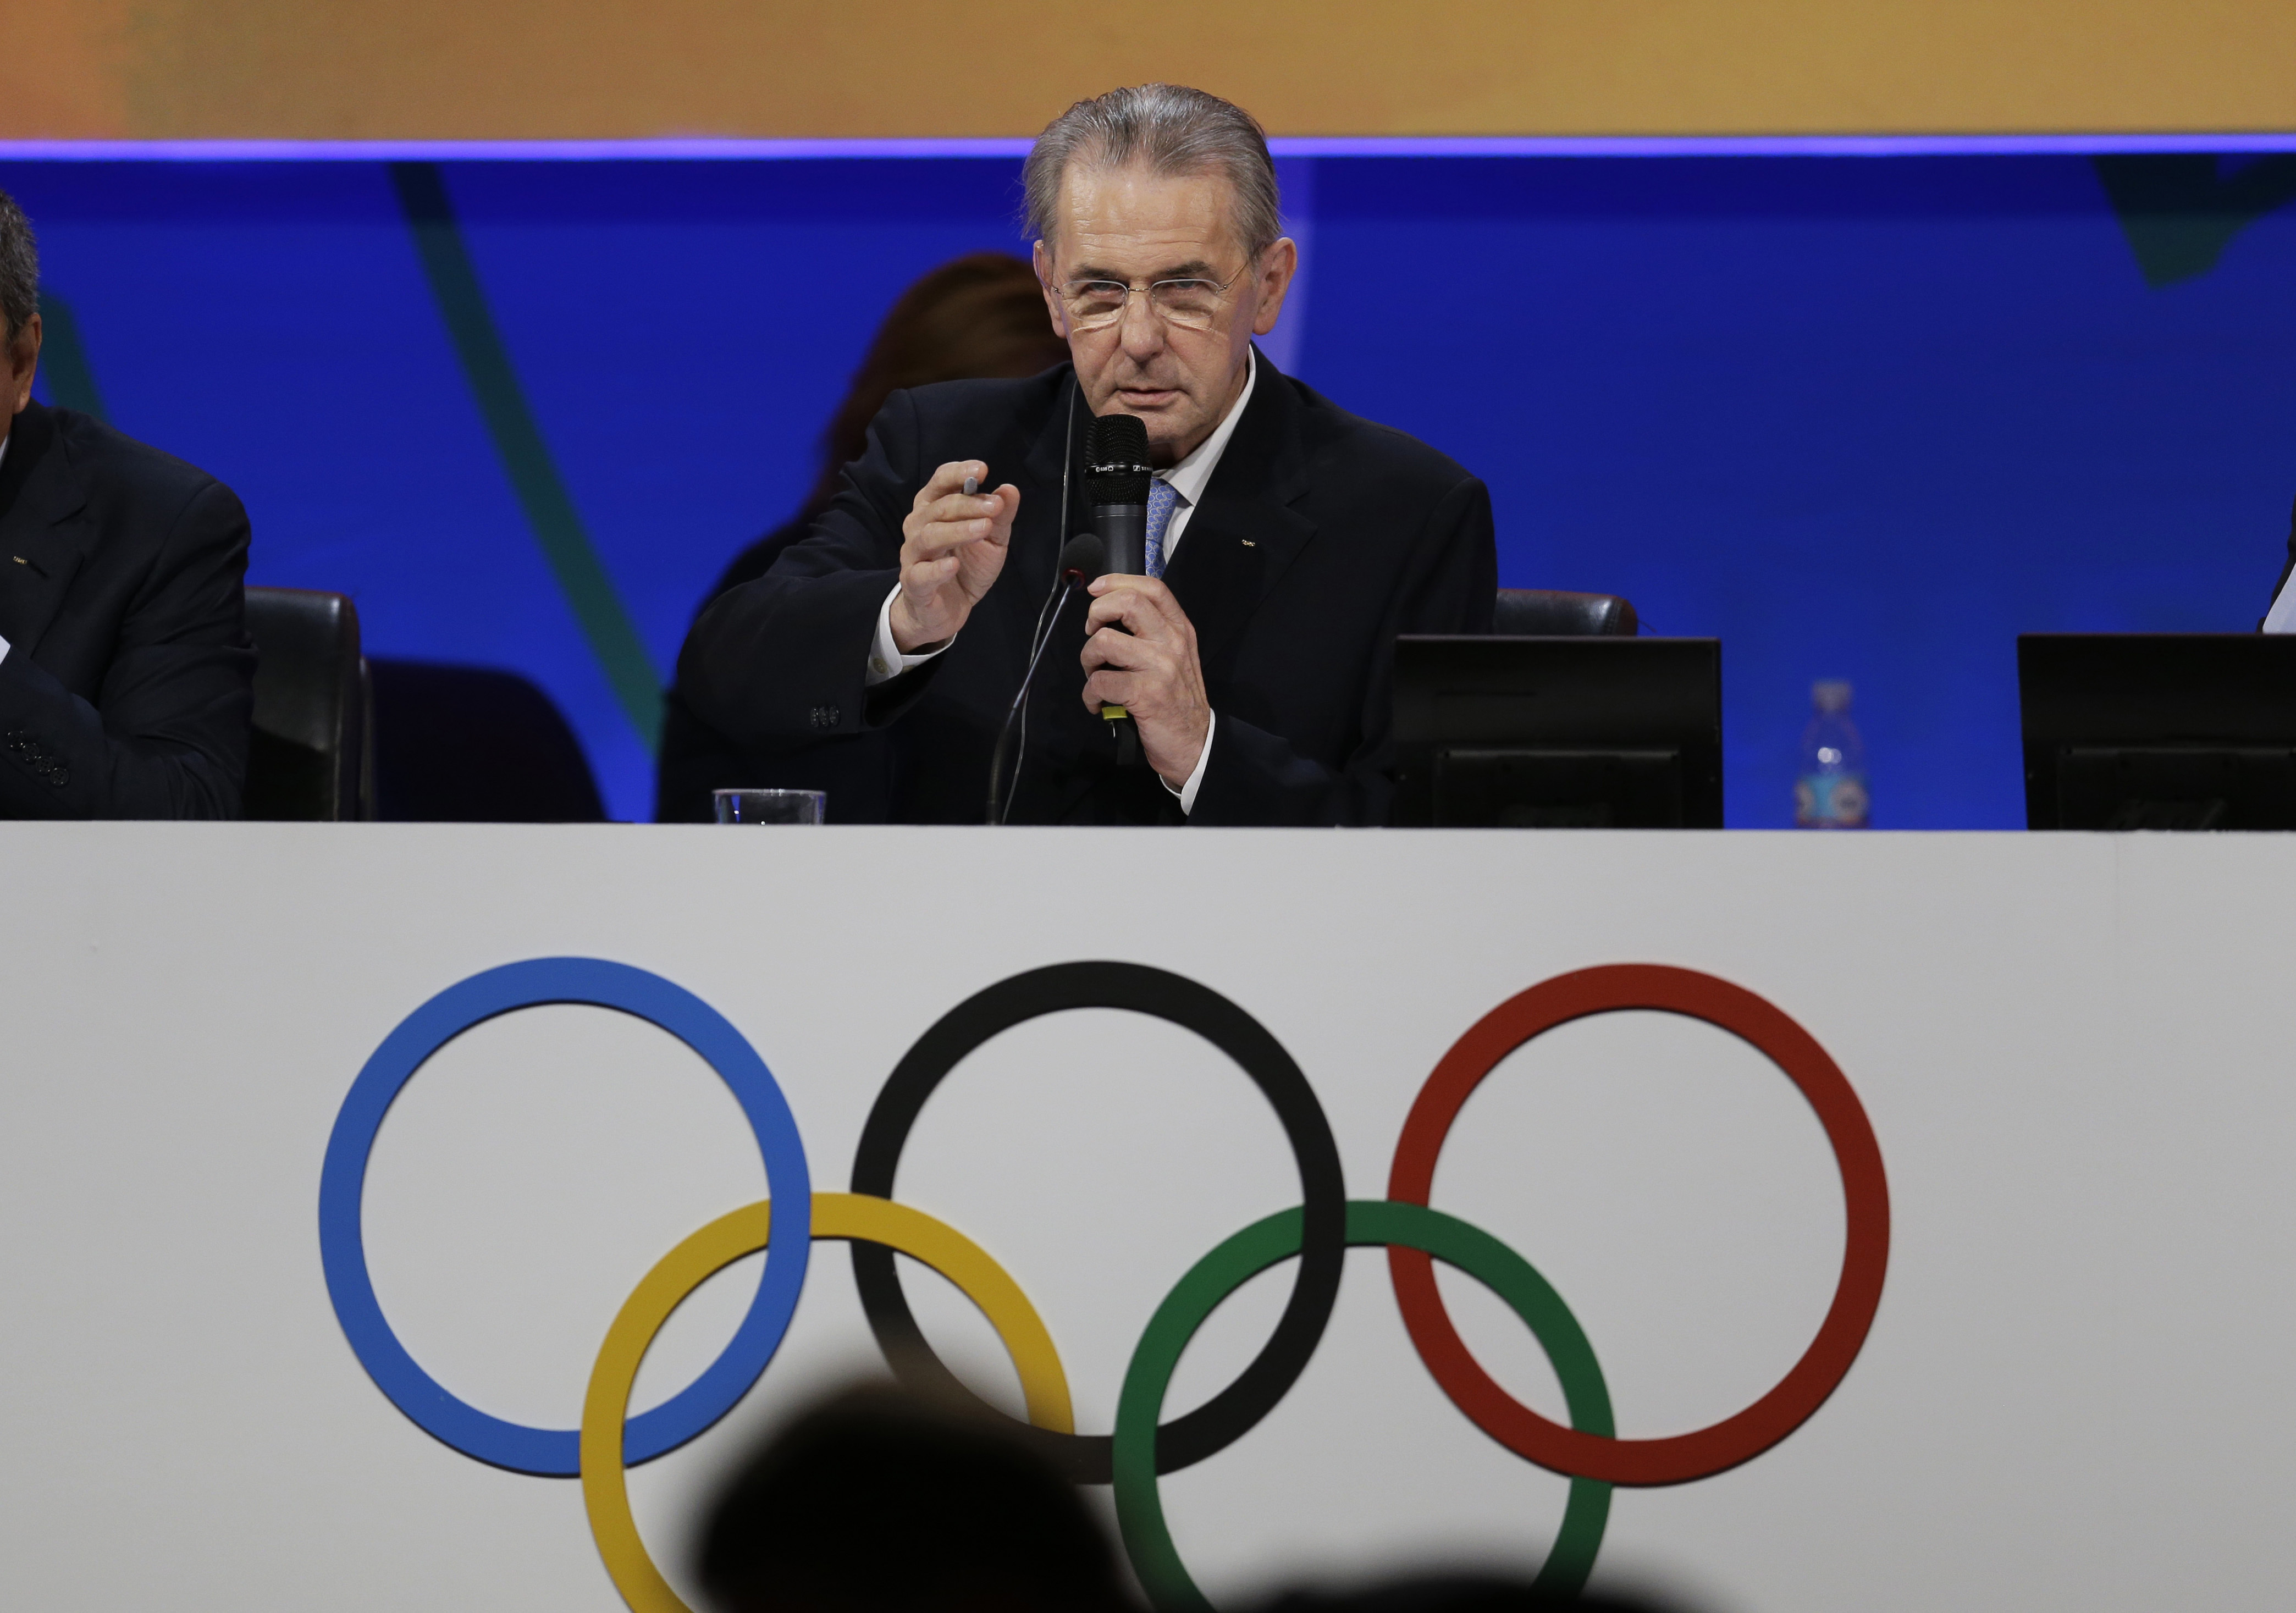 Jacques Rogge, who led the IOC for 12 years, has died. He was 79.